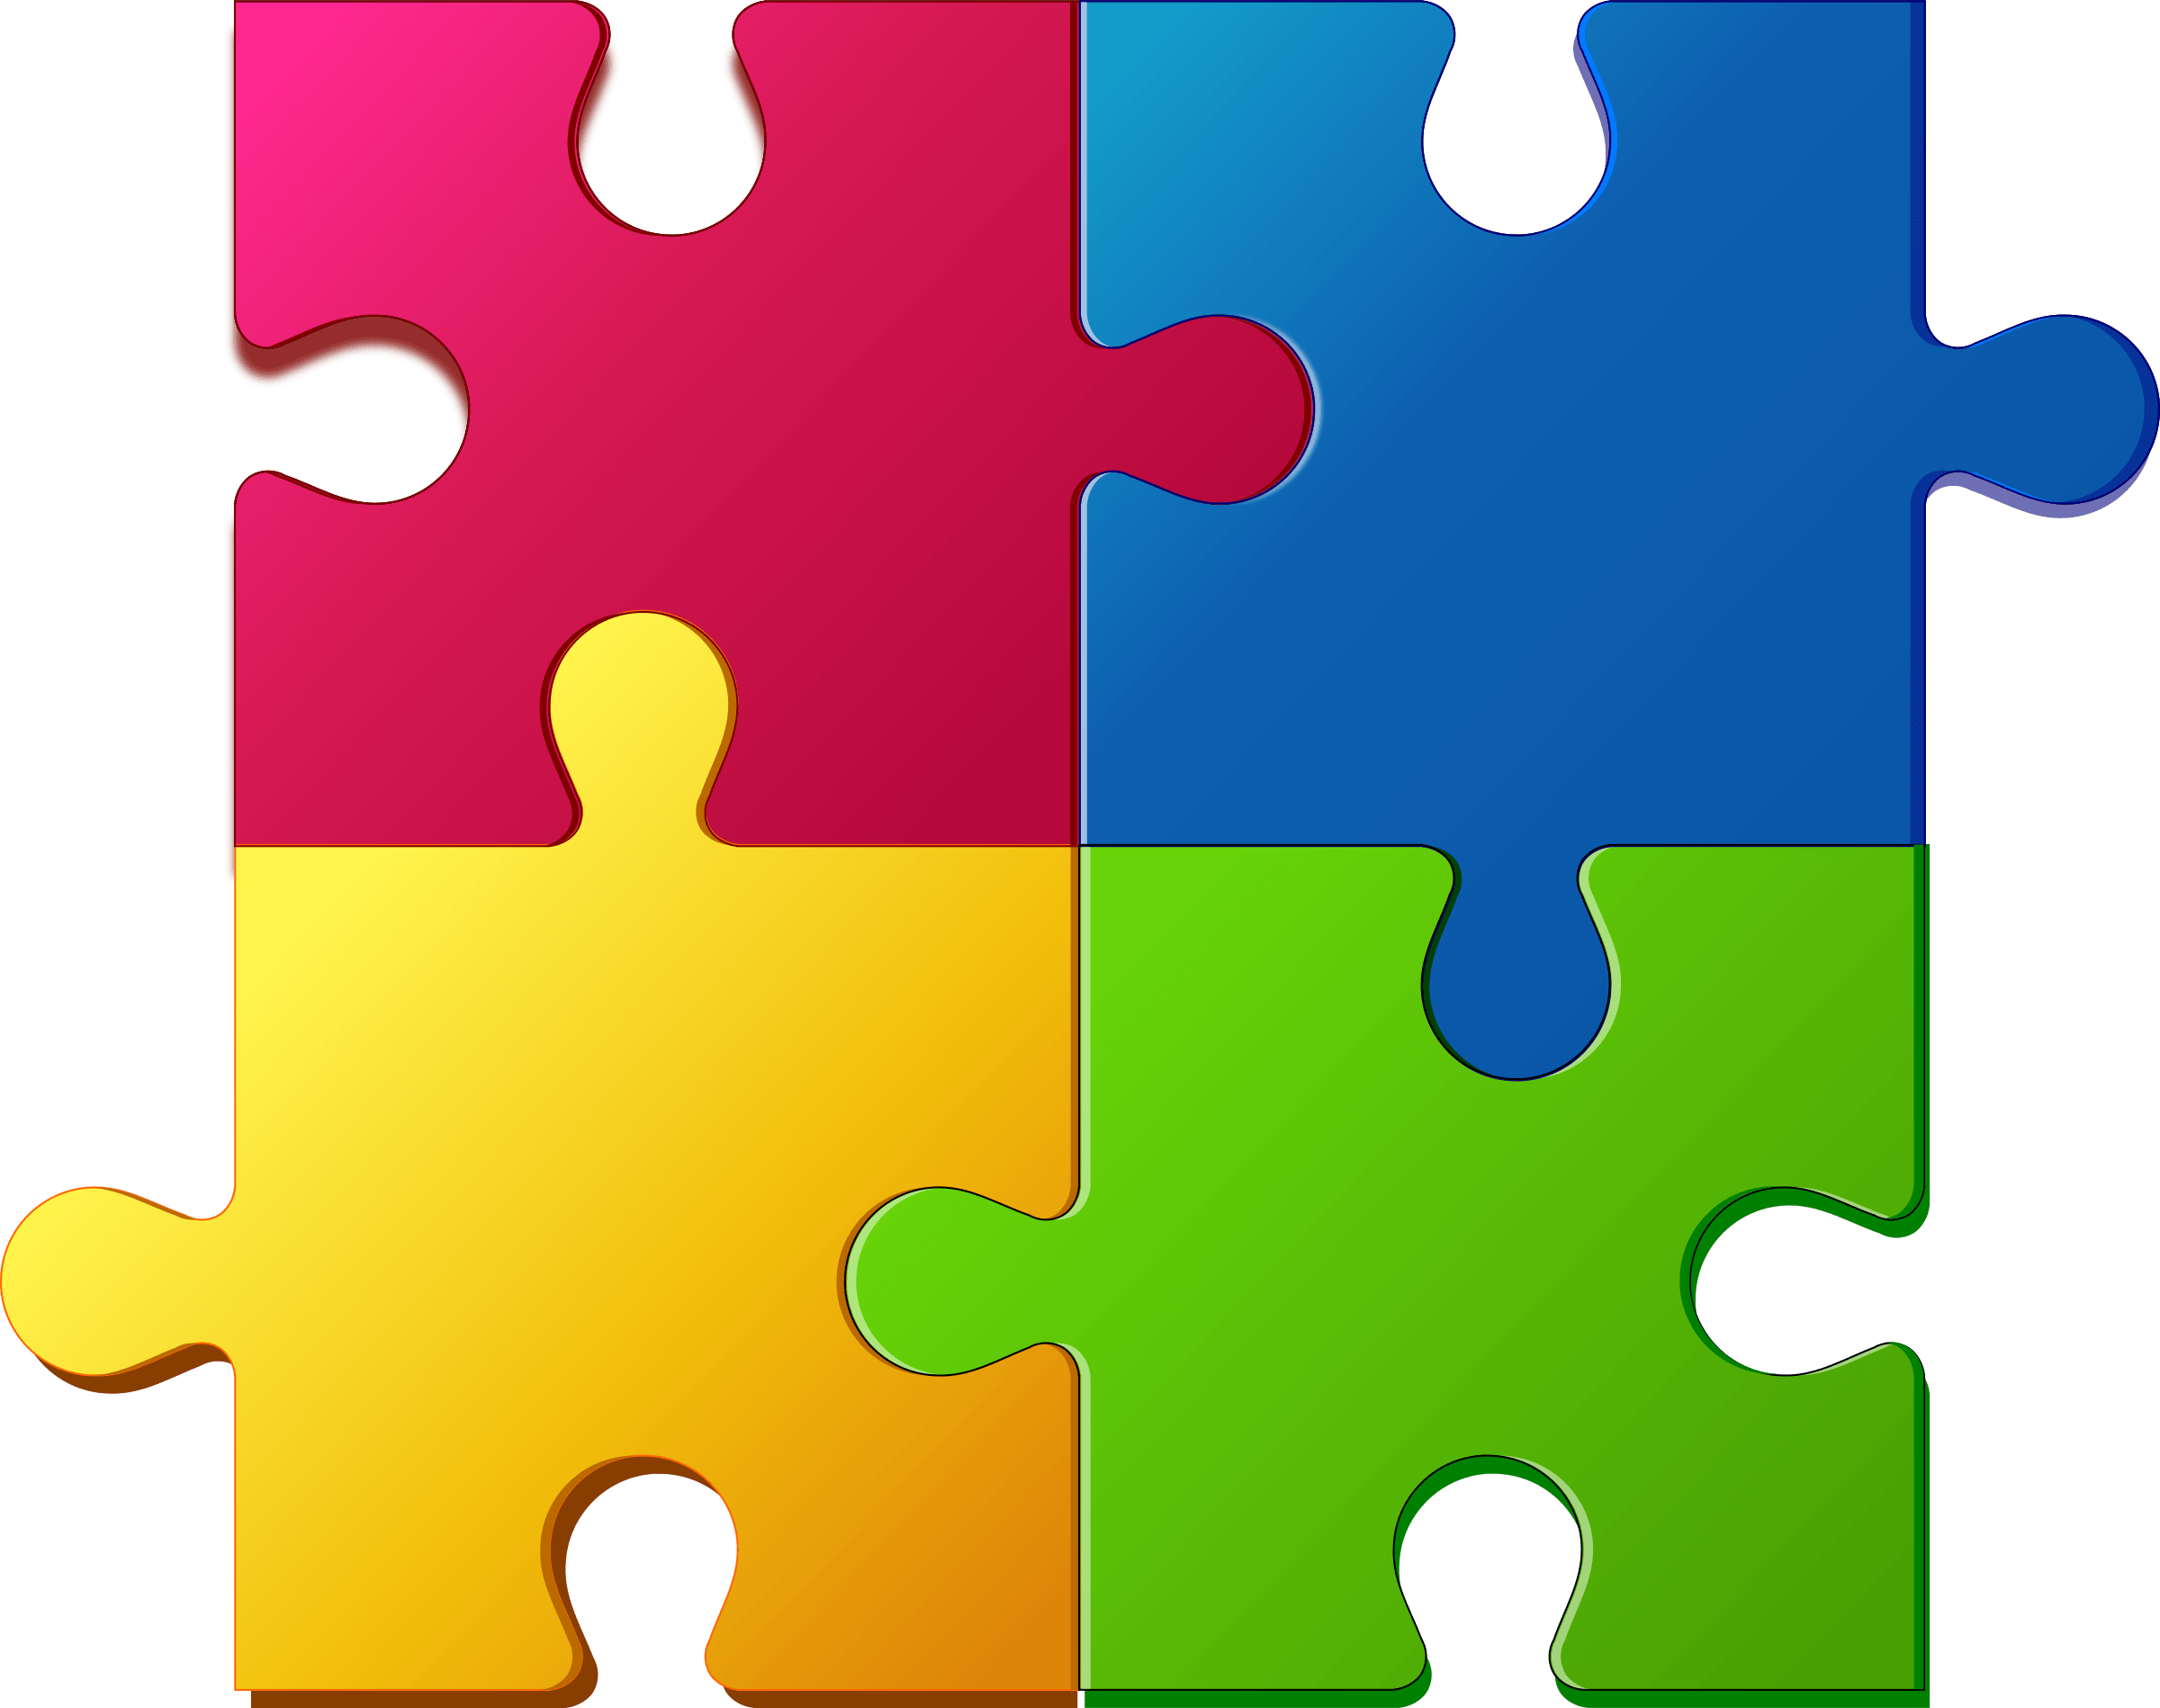 The missing piece by. Puzzle clipart jumbled